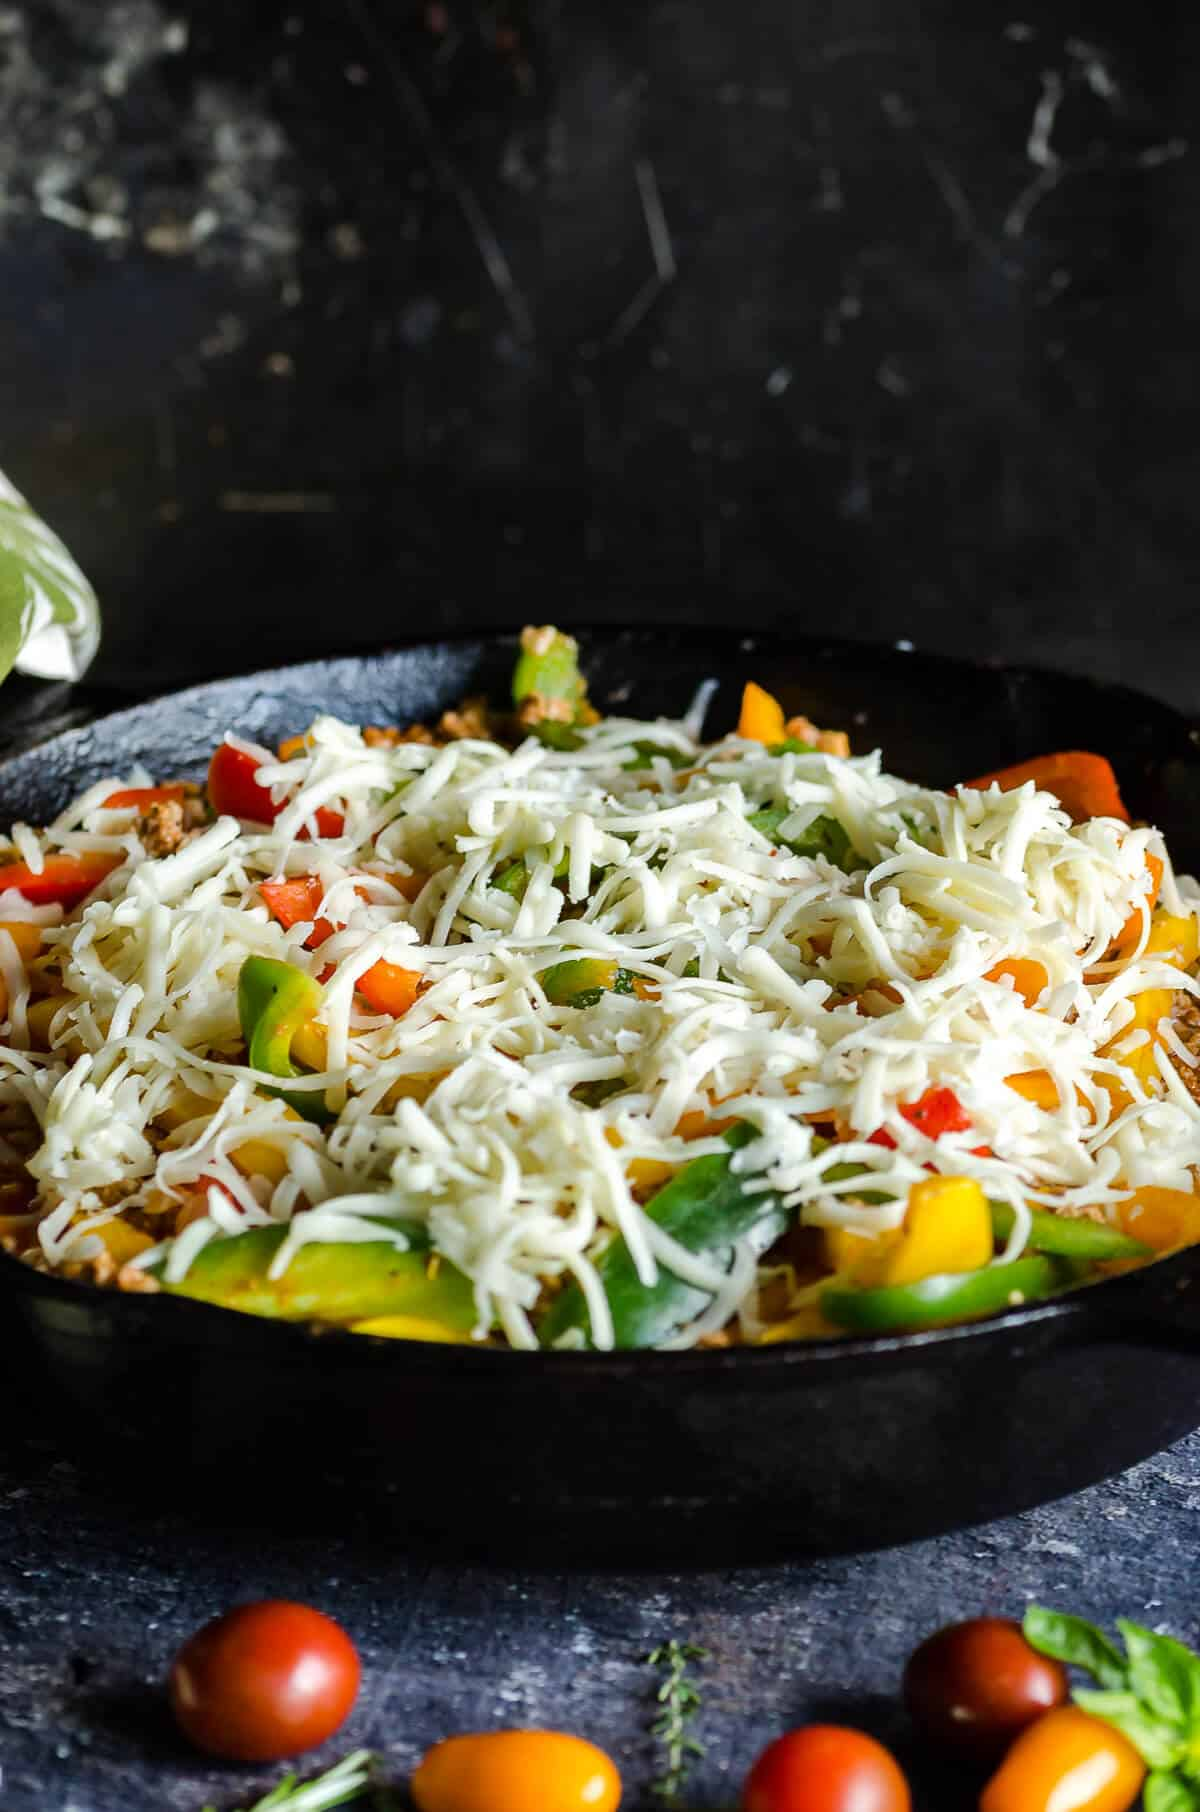 cast iron skillet filled with low carb unstuffed peppers made with ground turkey and cauli rice and sprinkled with cheese ready to go in the oven.